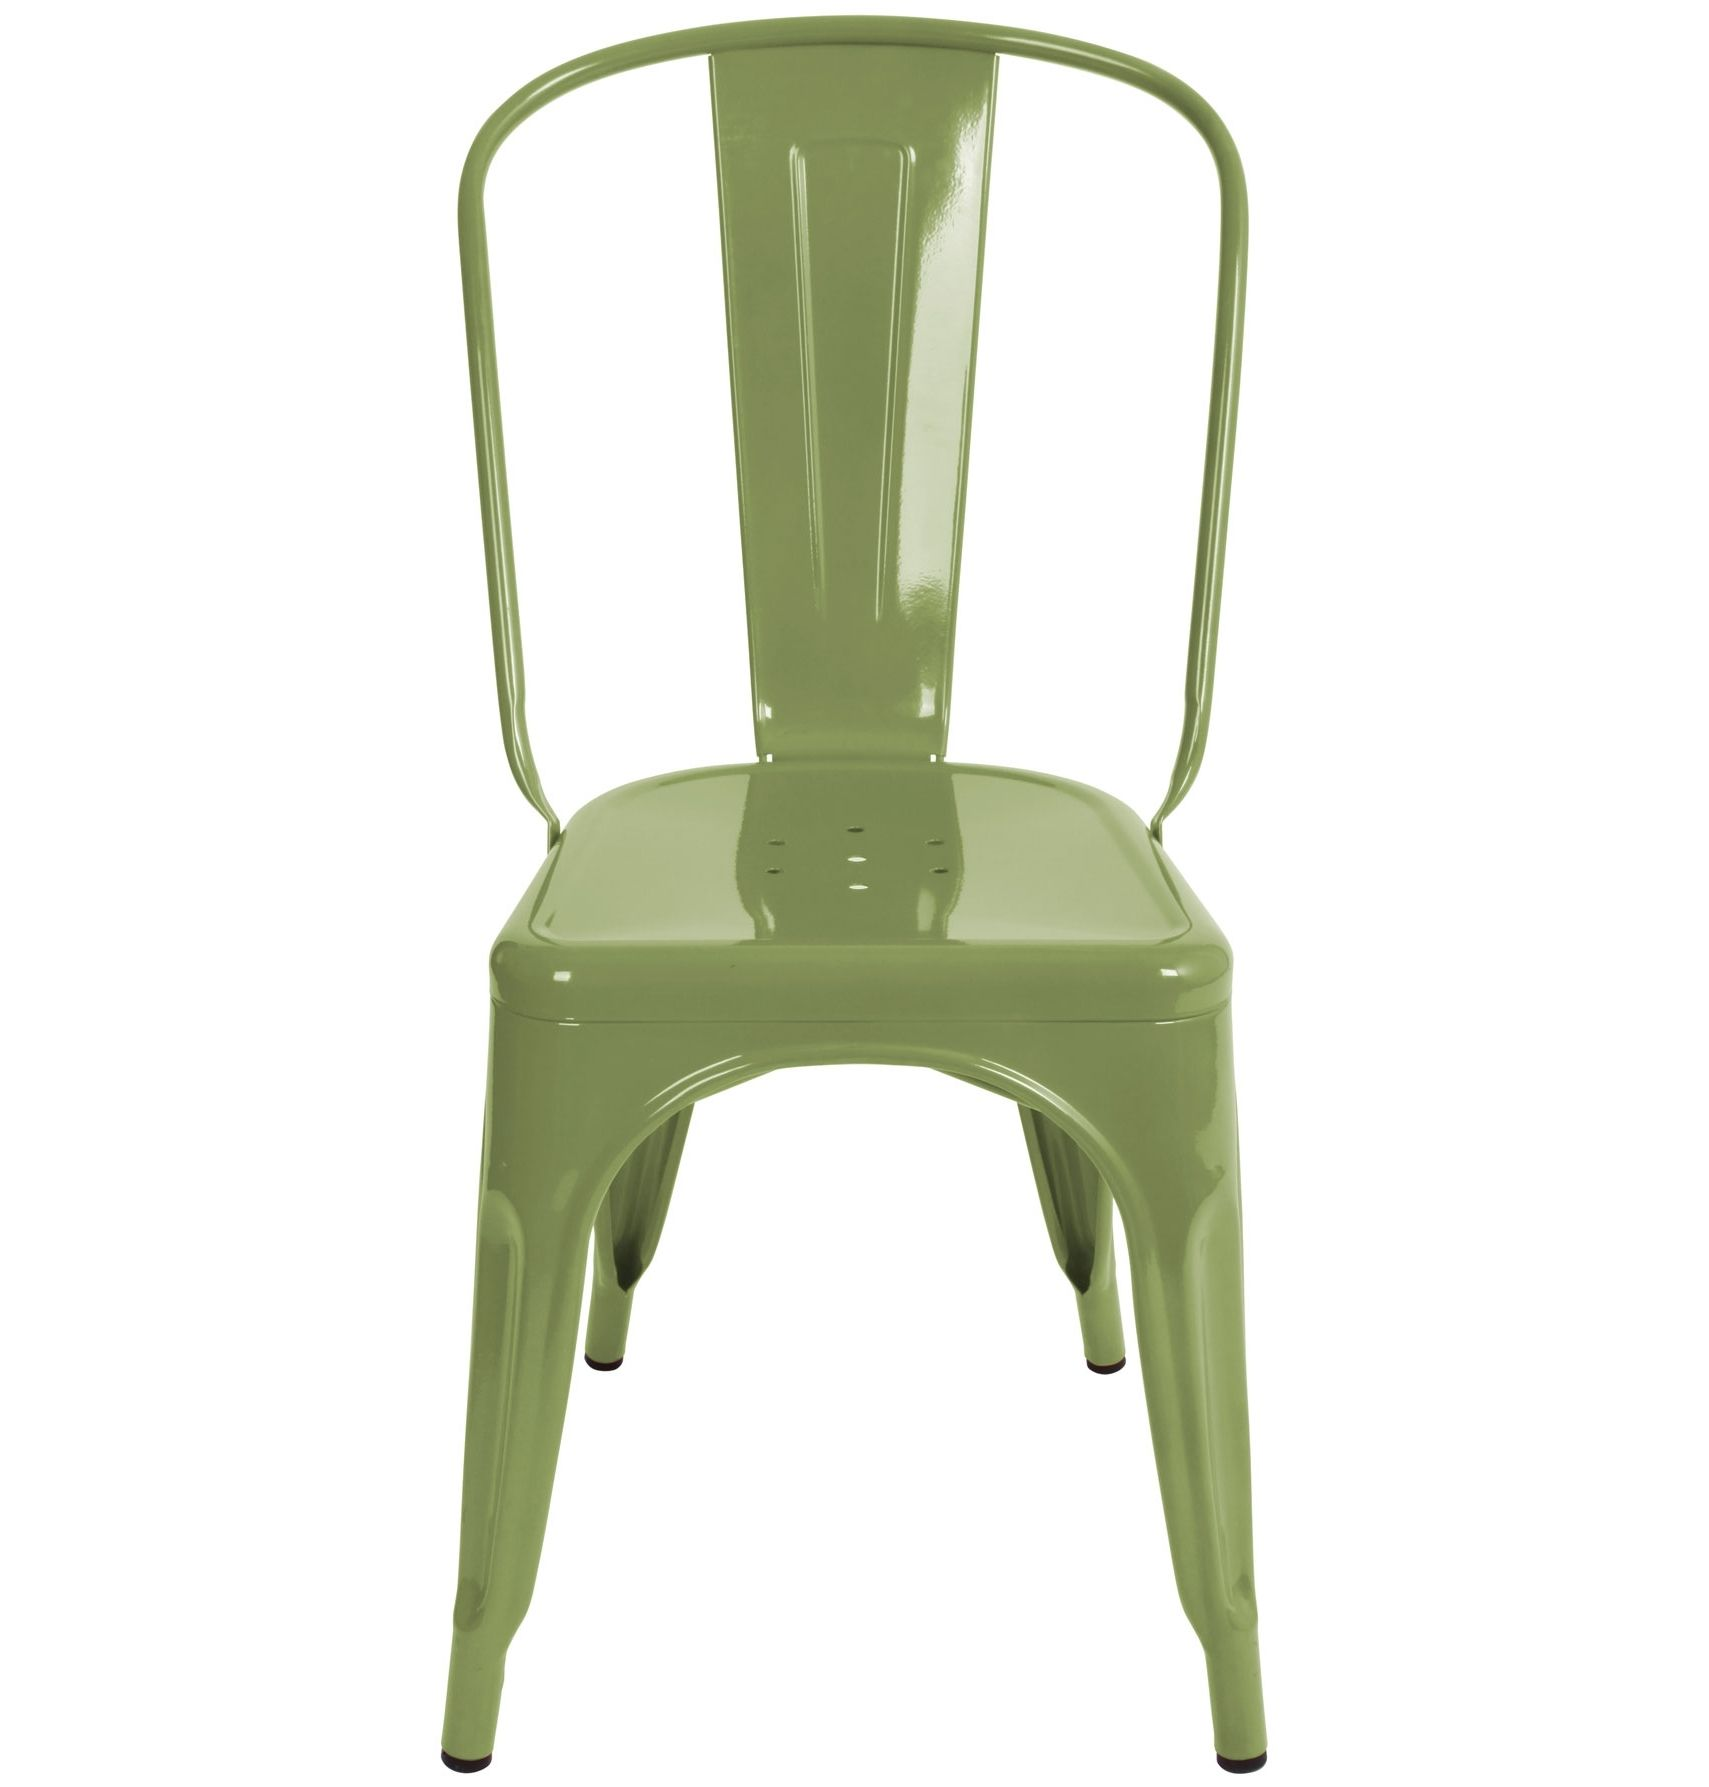 replica xavier pauchard tolix chair powder coated clearance matt